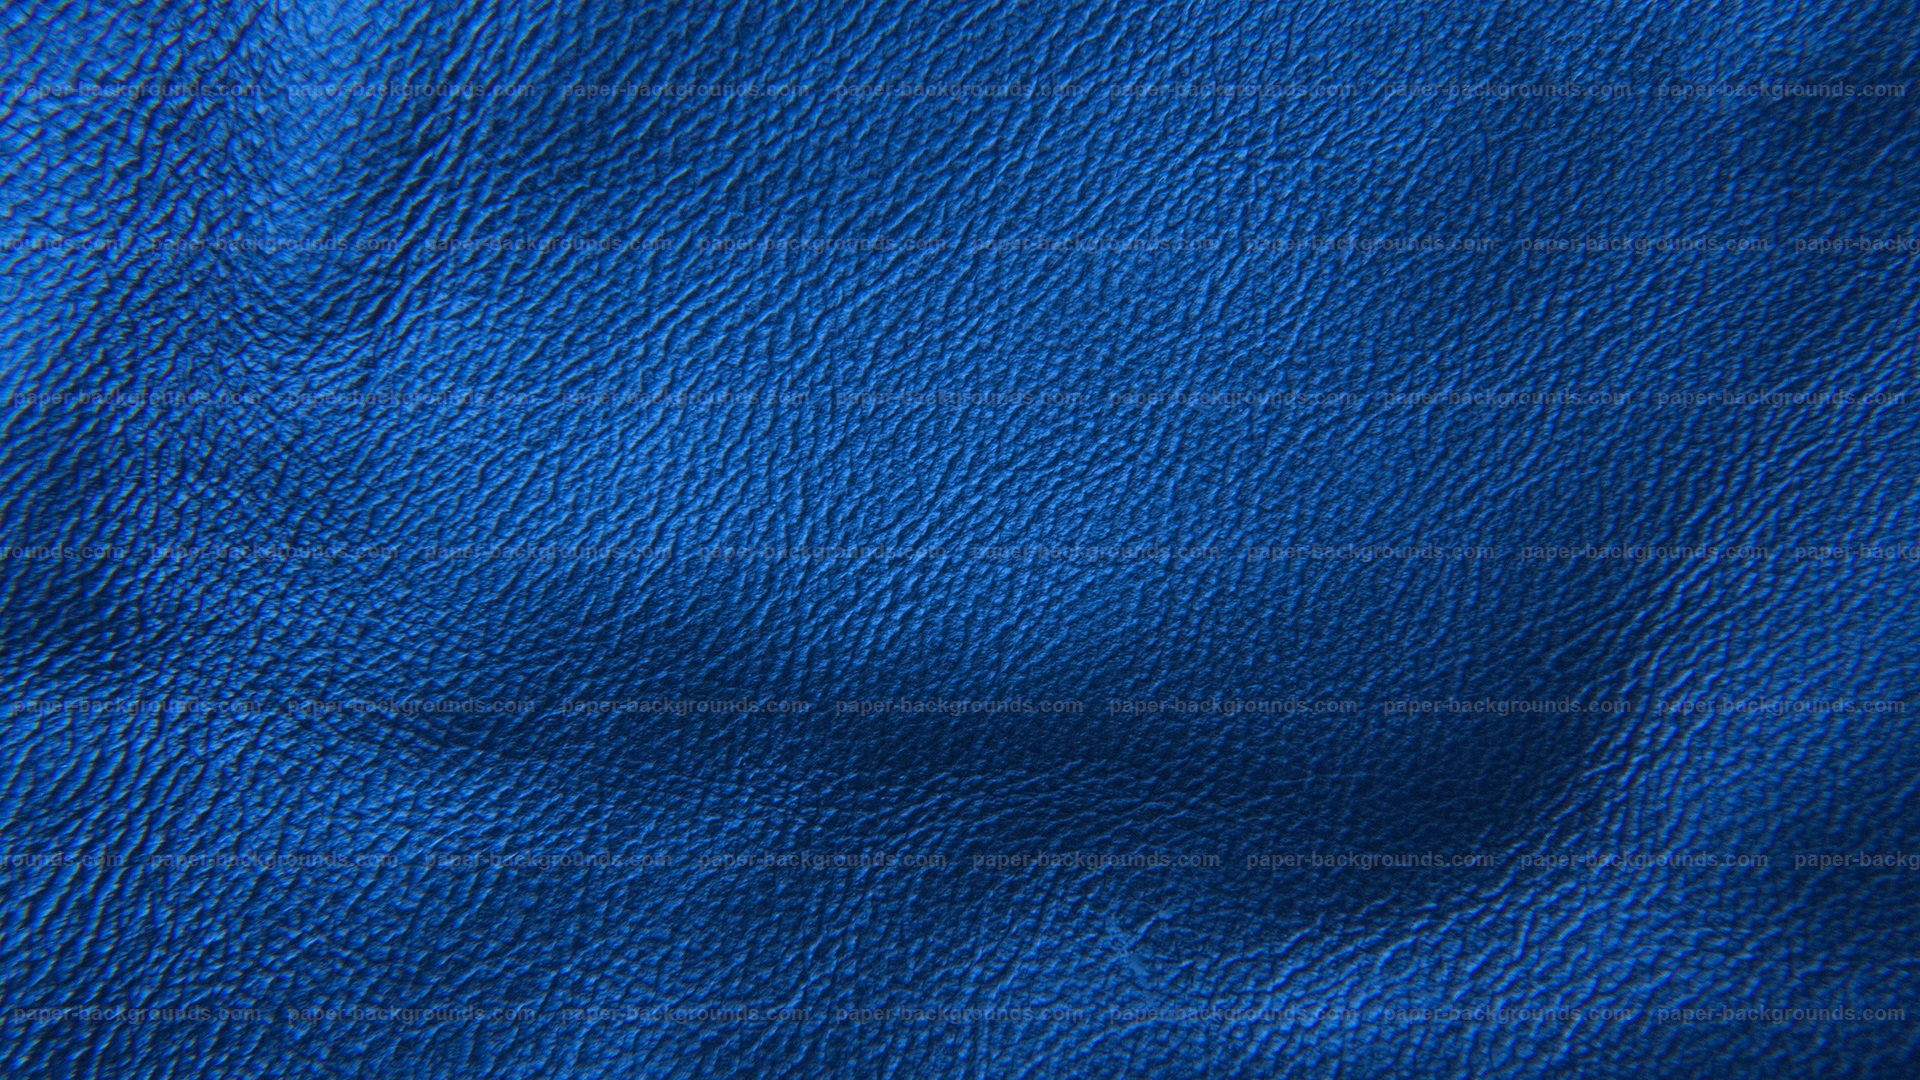 Paper Backgrounds Blue Leather Texture Background Hd